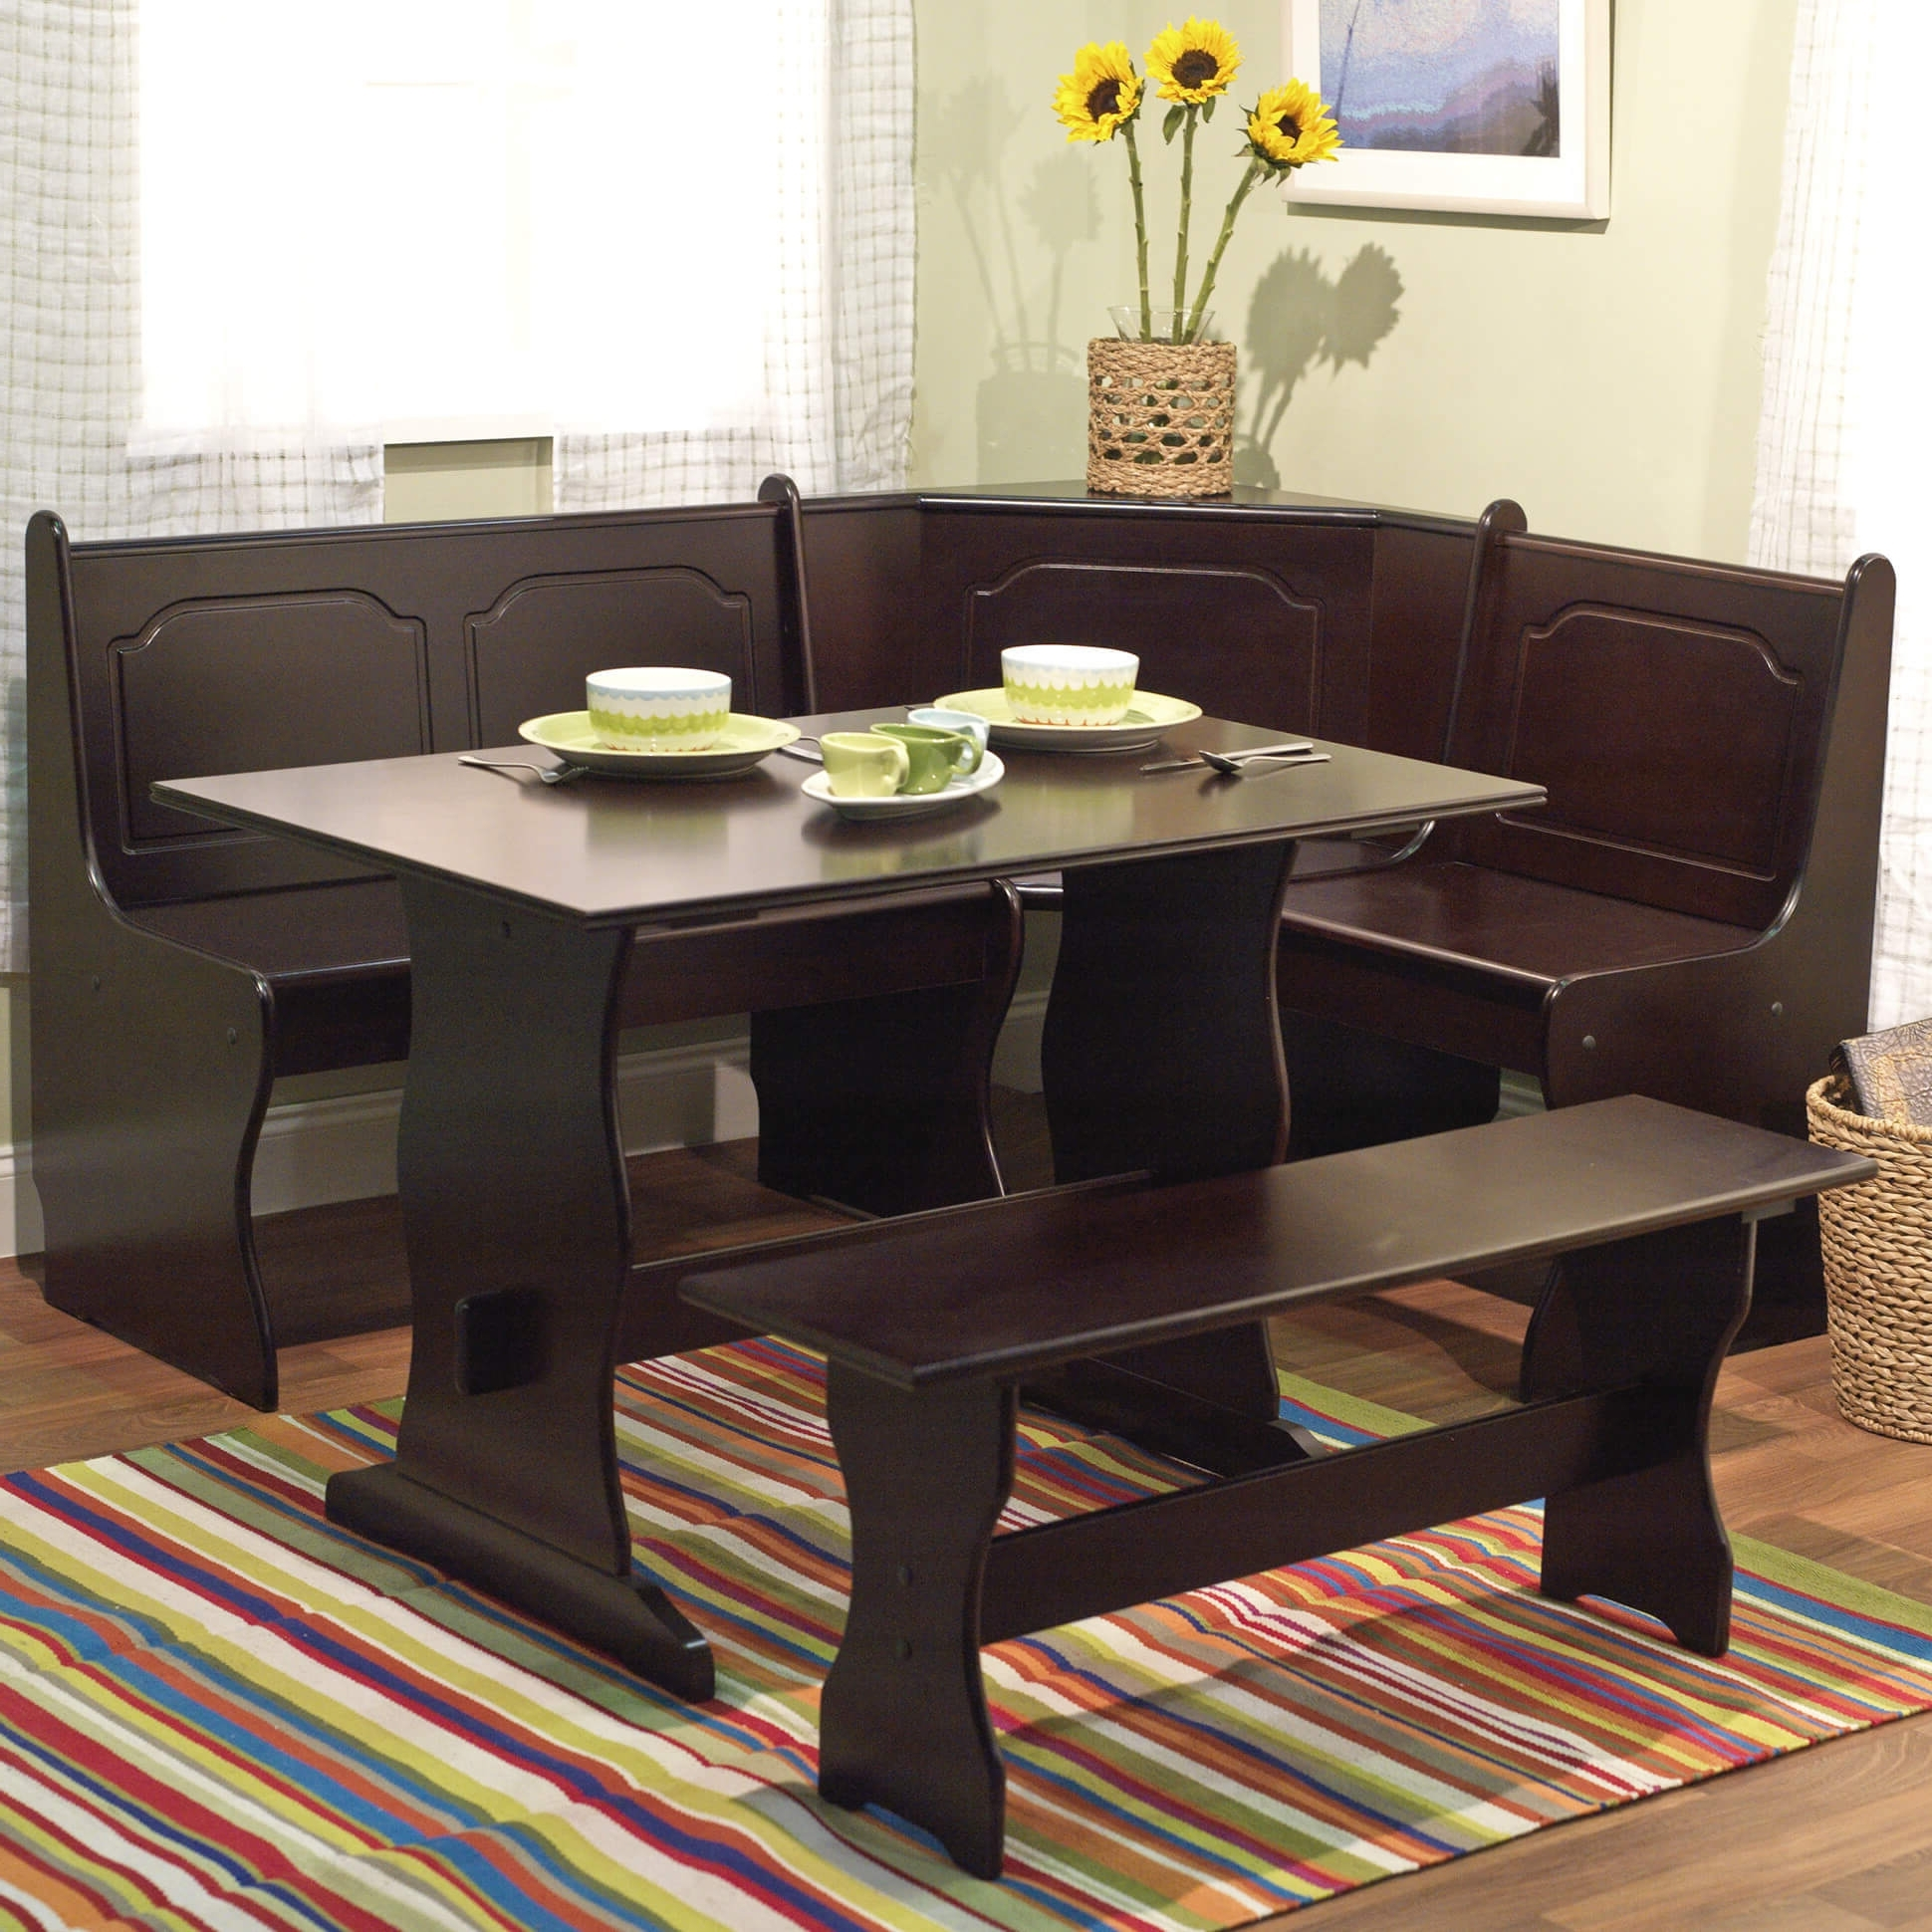 Dark Wood Square Dining Tables Inside Fashionable Wow! 30 Space Saving Corner Breakfast Nook Furniture Sets (2018) (Gallery 7 of 25)